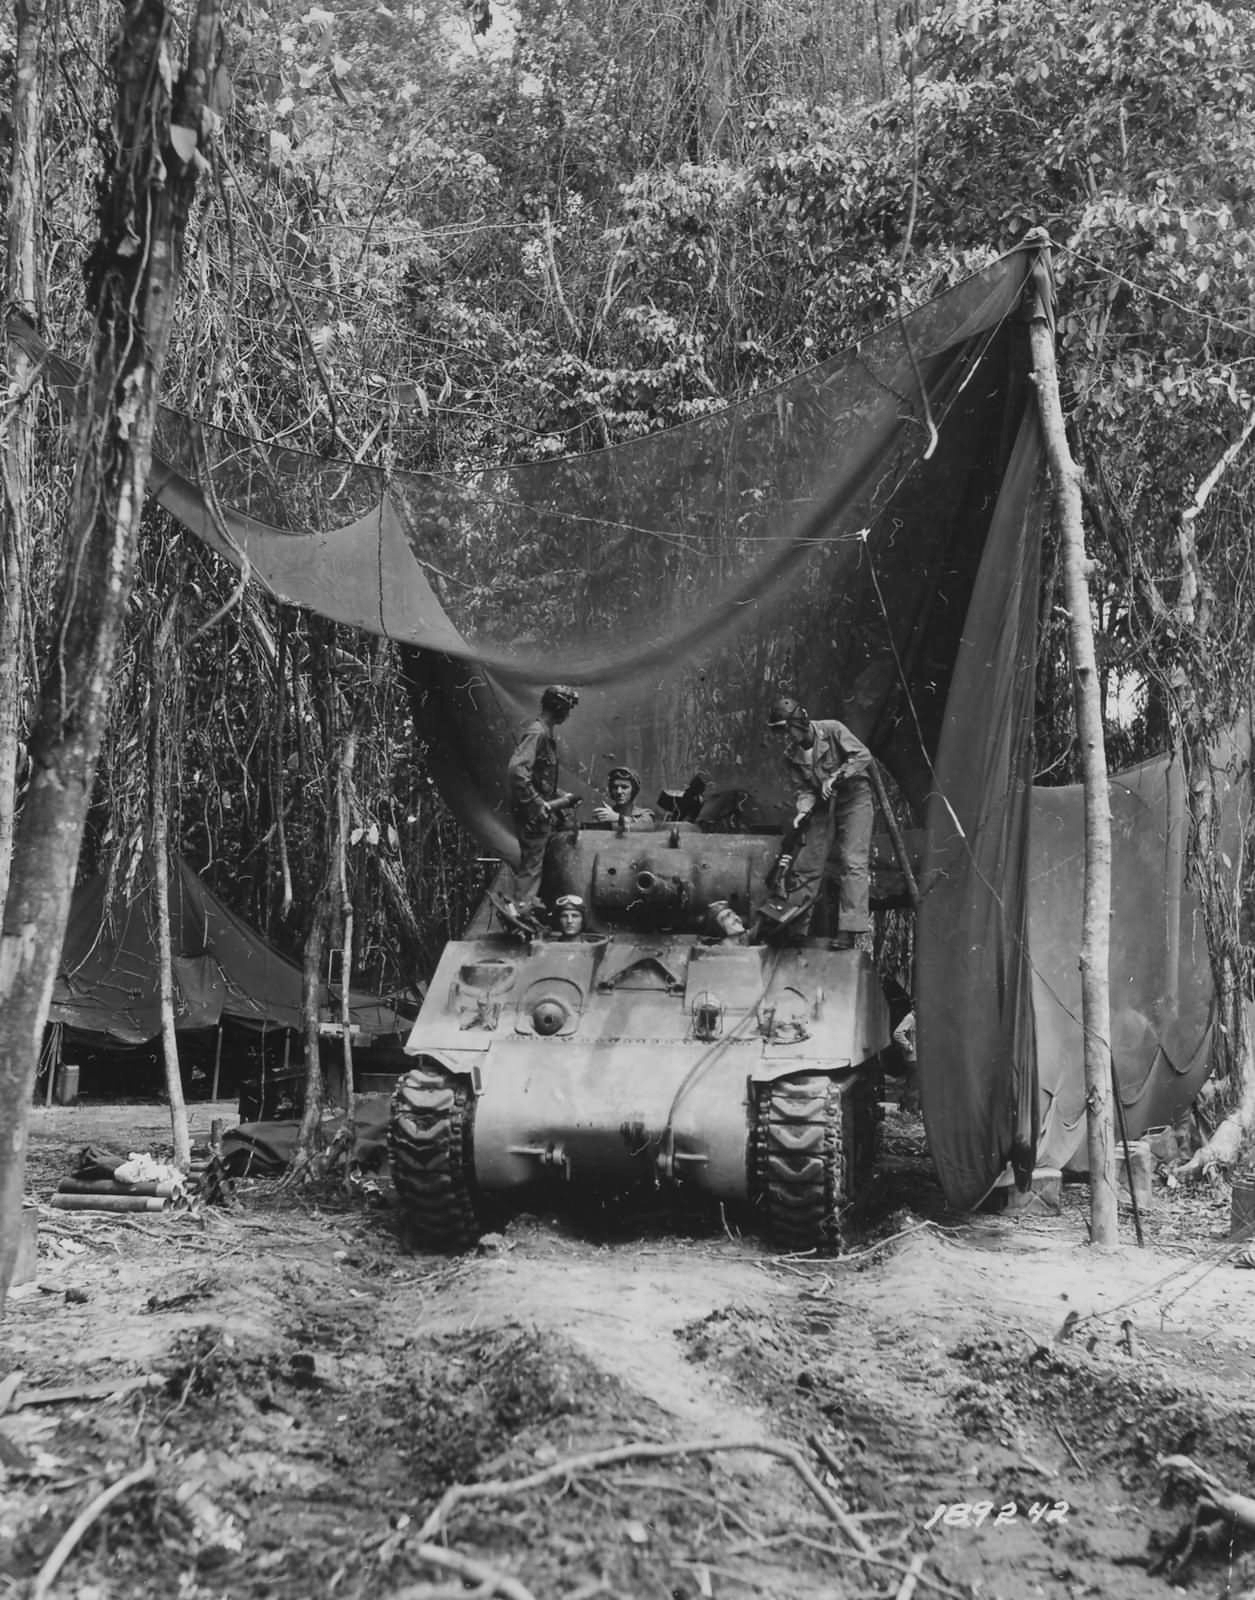 M4_Sherman_Tank_Bougainville_March_19441 (1)